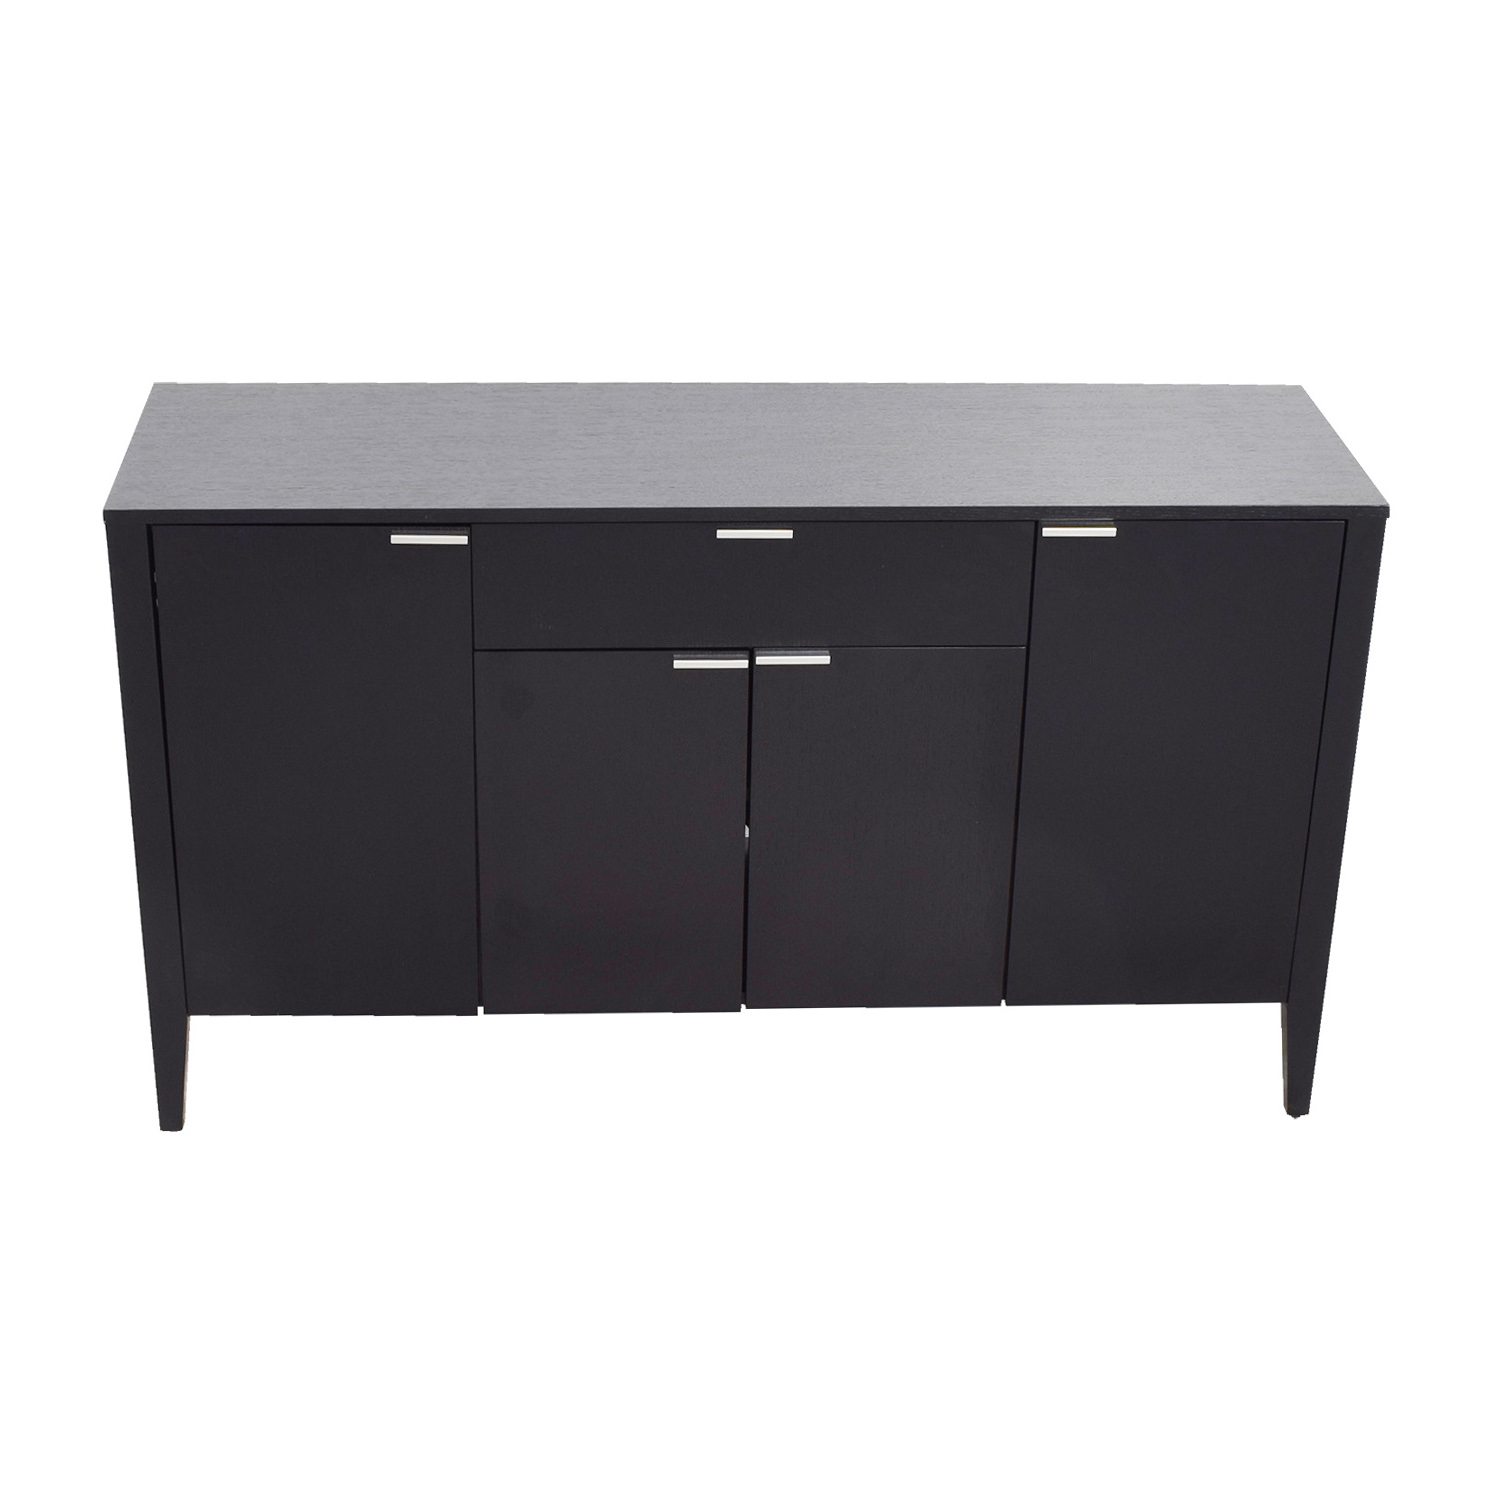 Crate & Barrel Crate & Barrel Media Storage Cabinet price